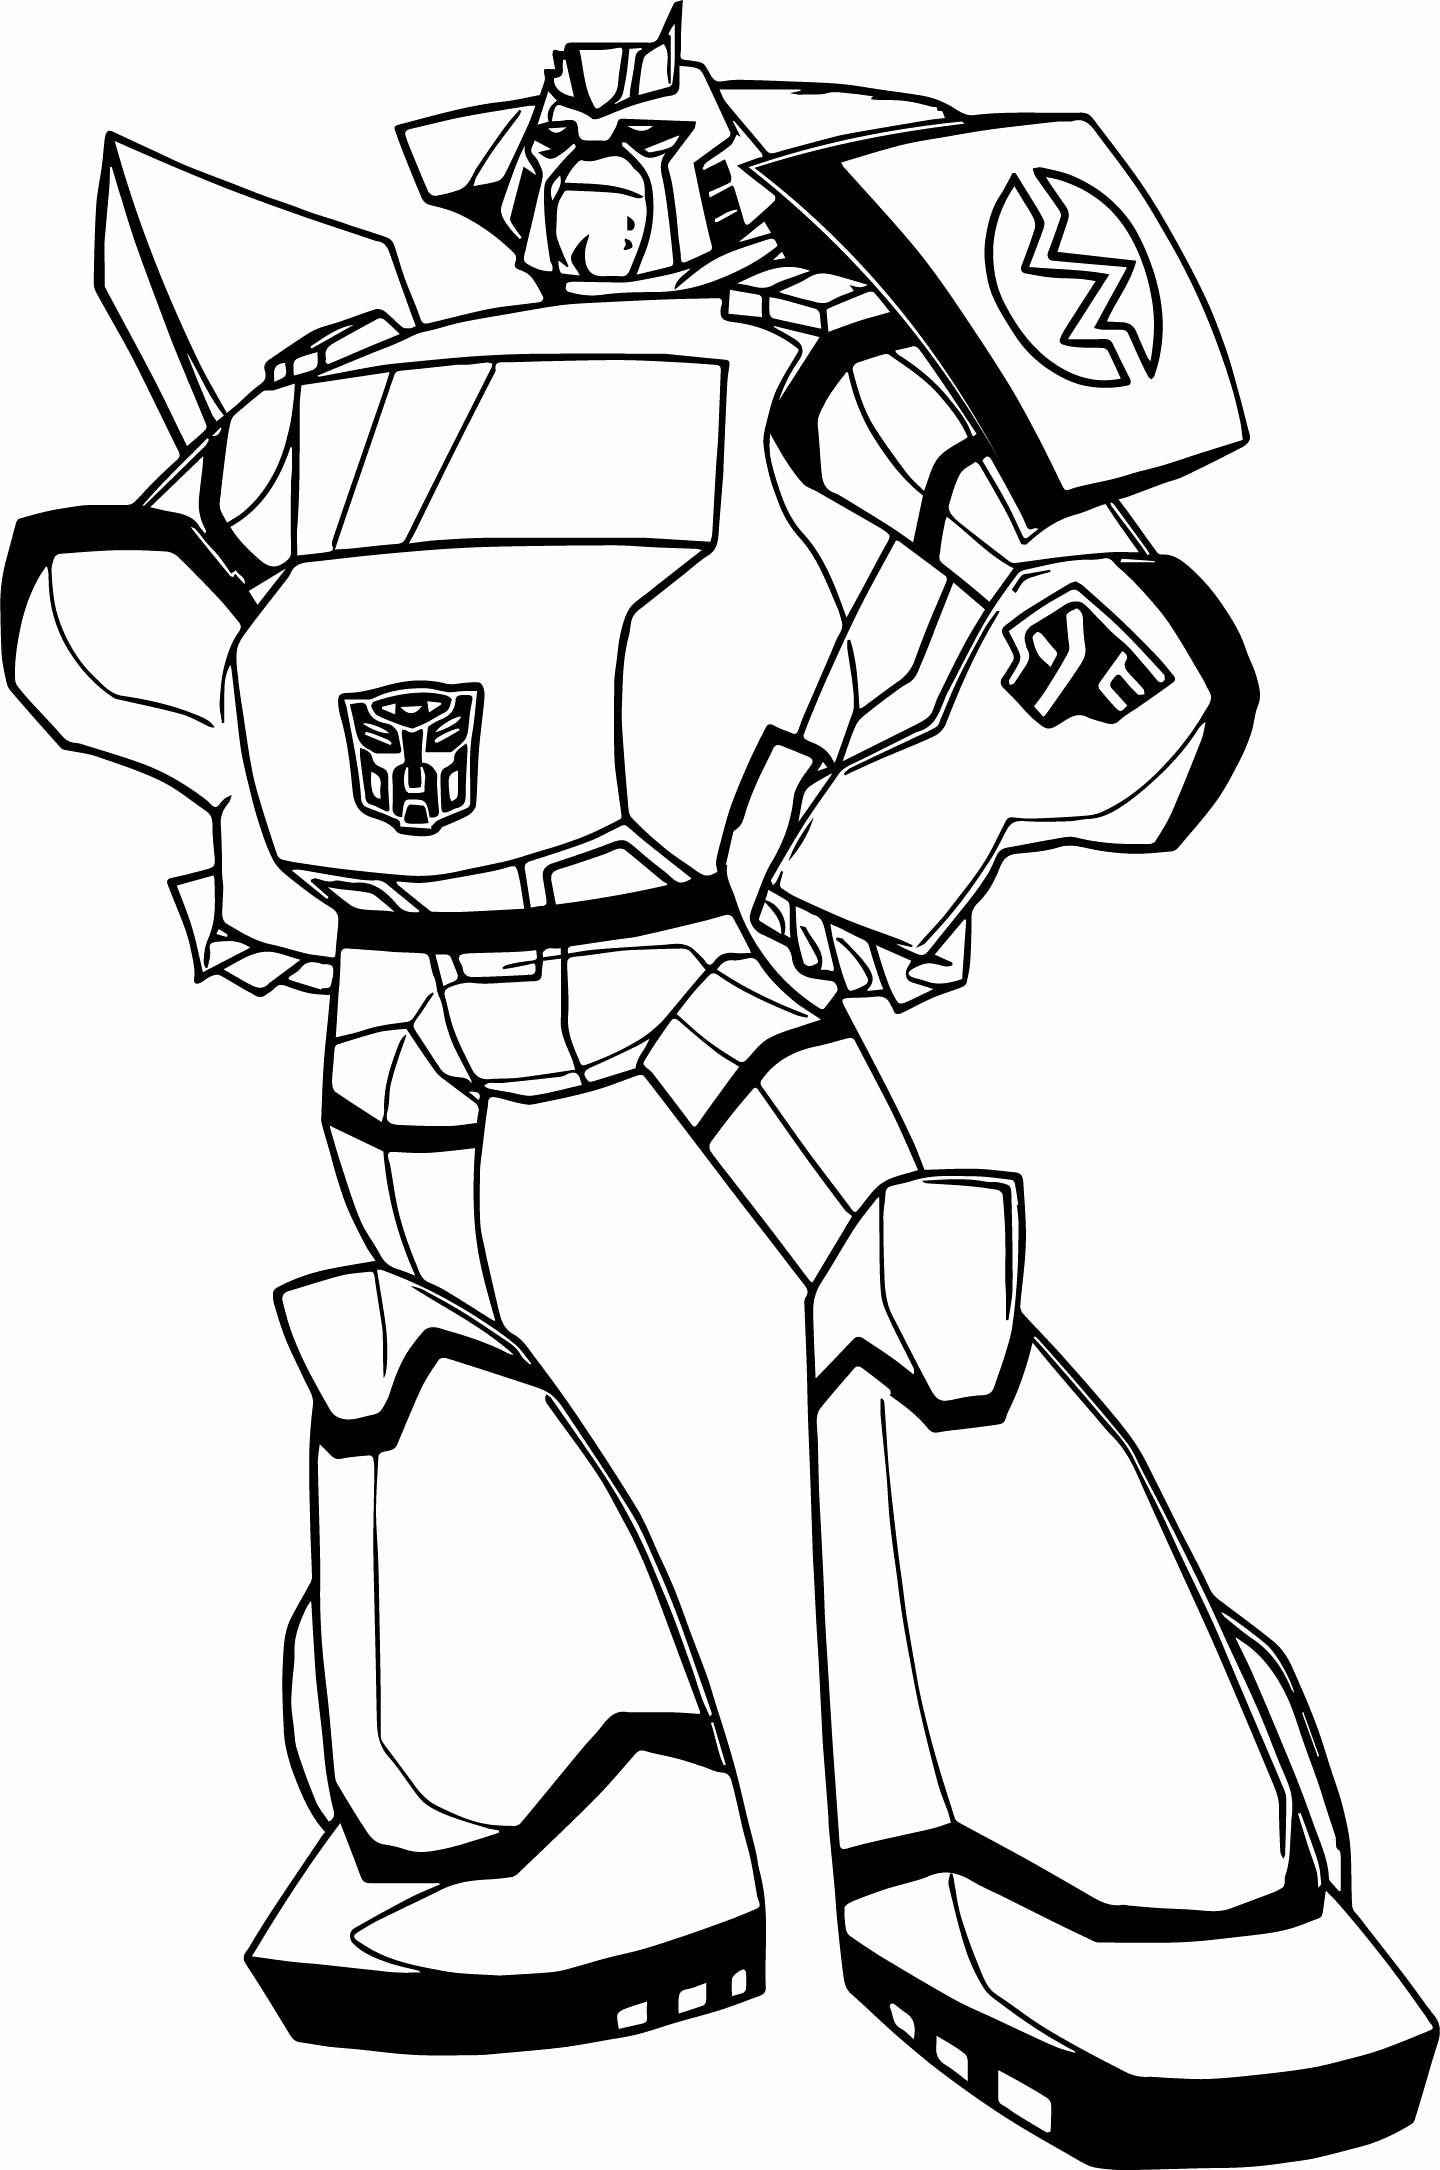 Transformers Bumblebee Coloring Page Awesome Coloring Pages Pin Wecoloringpage Bumblebee Transfor Transformers Coloring Pages Bee Coloring Pages Coloring Pages